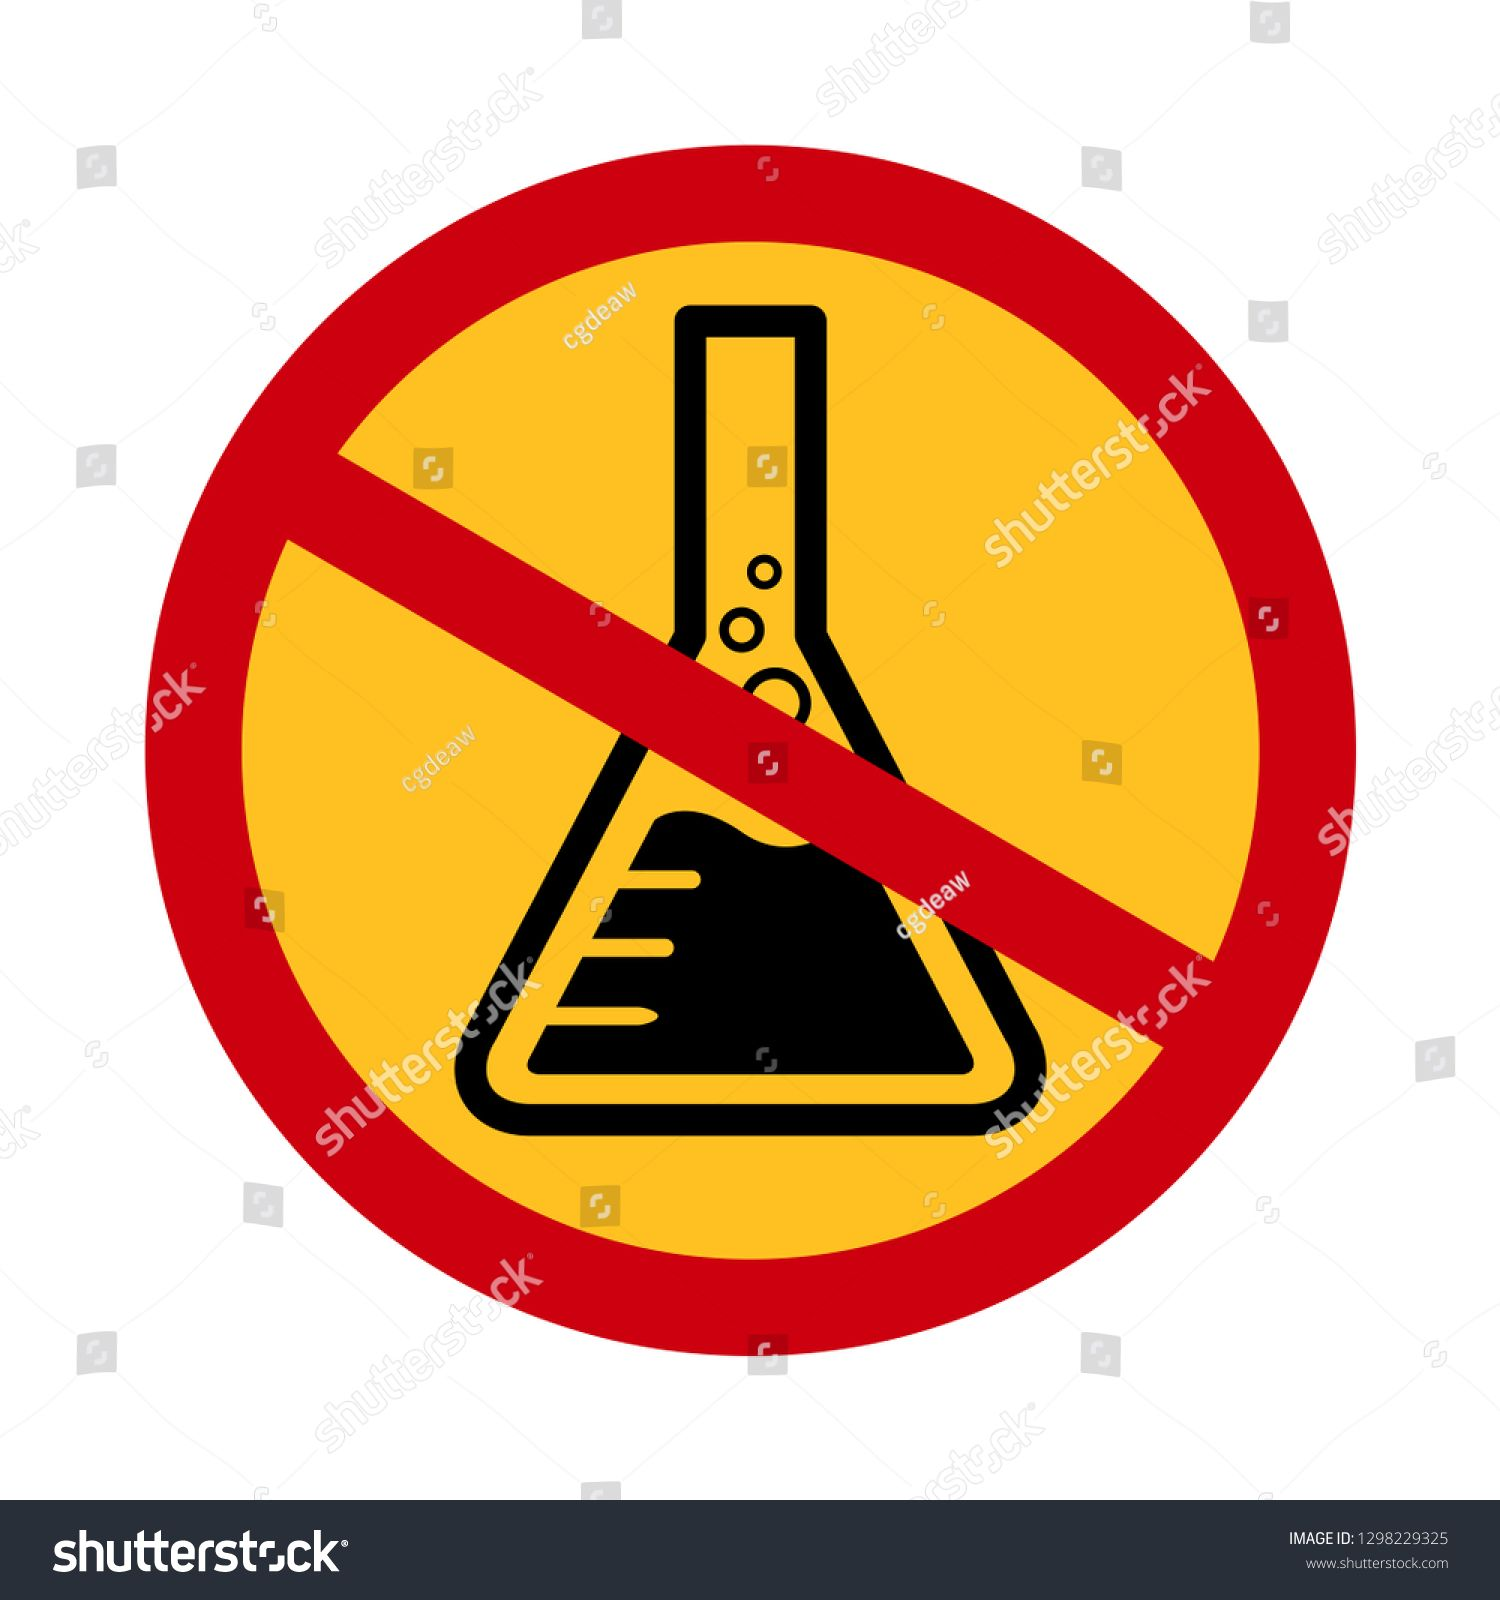 Chemicals Free Symbol Danger Chemicals Warning Sign Chemical Safety Mercury Free Icon In Red Crossed Circle For Chemical Free Chemical Safety Photos For Sale